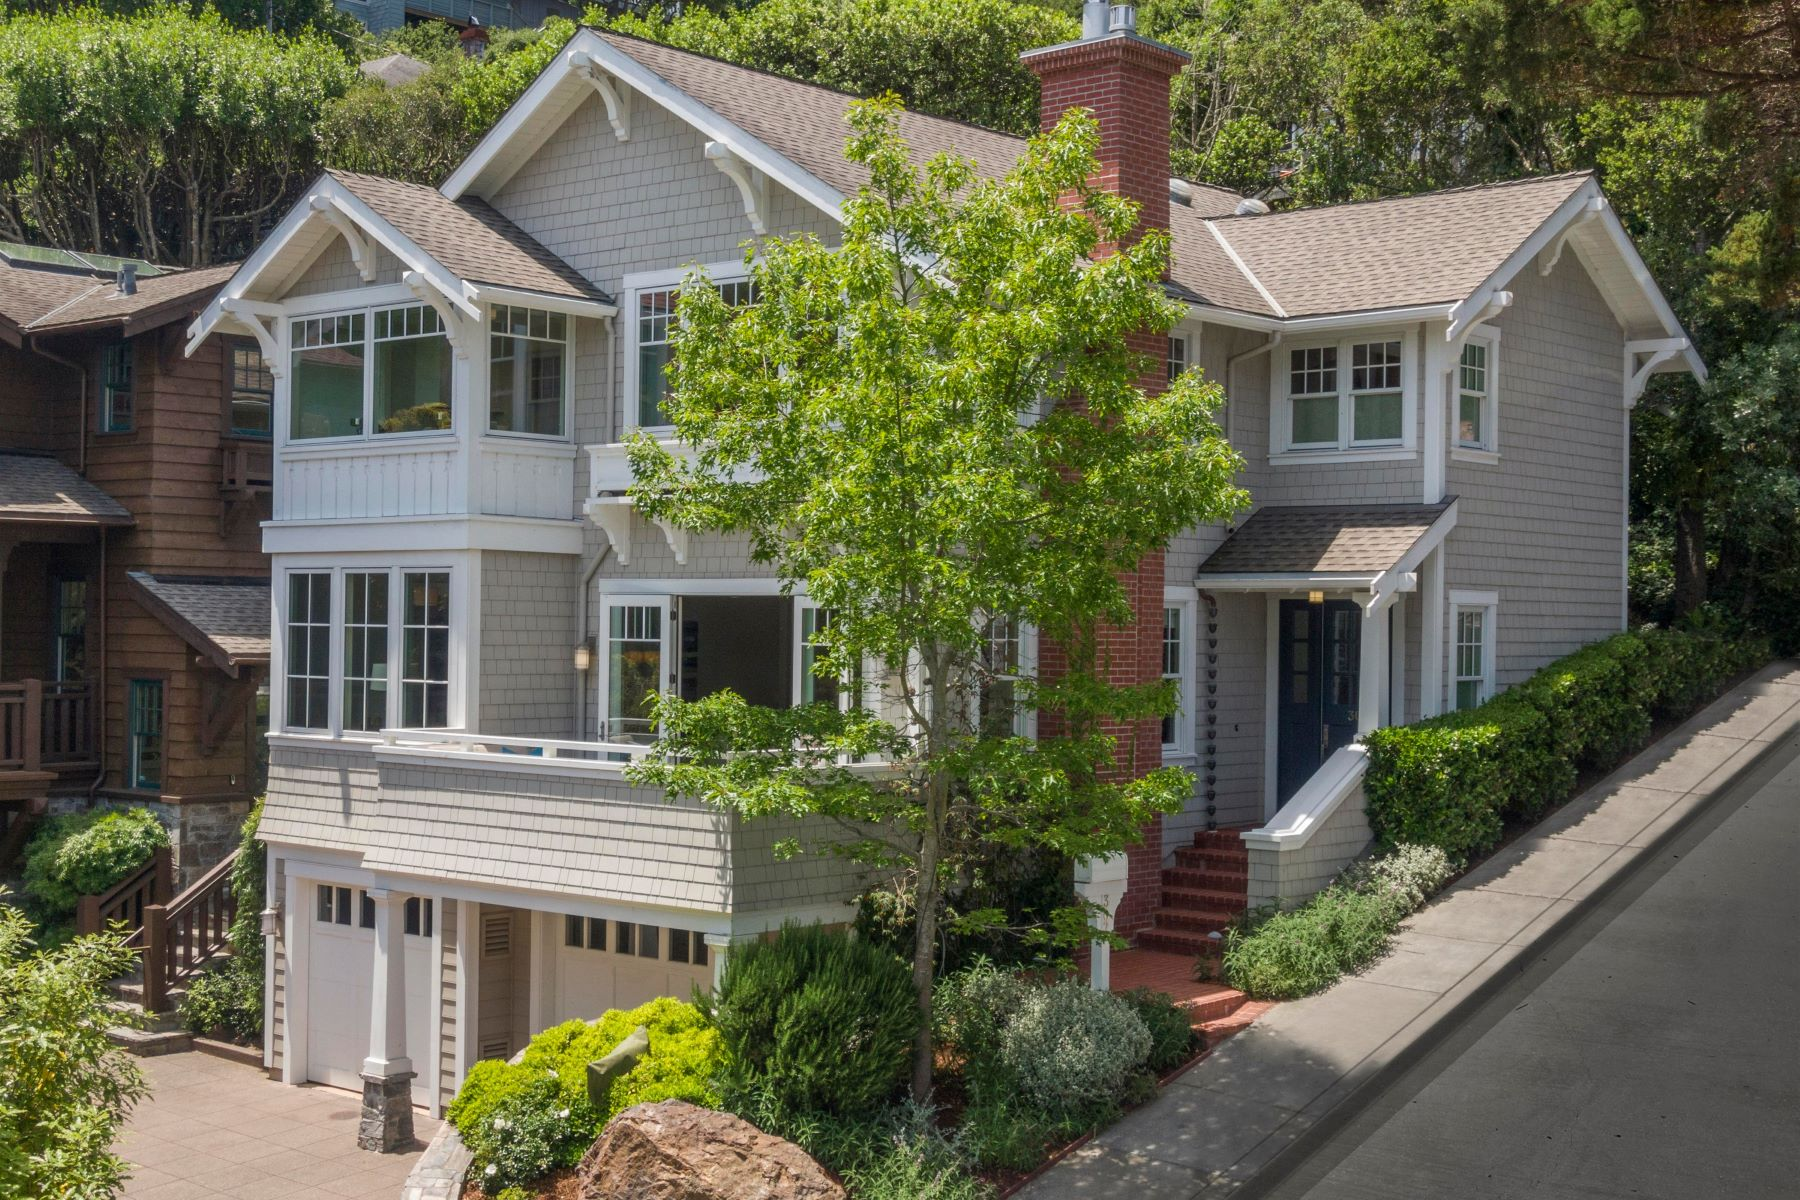 Single Family Homes for Sale at Stunning Newer Construction in Sausalito 307 South Street, Sausalito, California 94965 United States